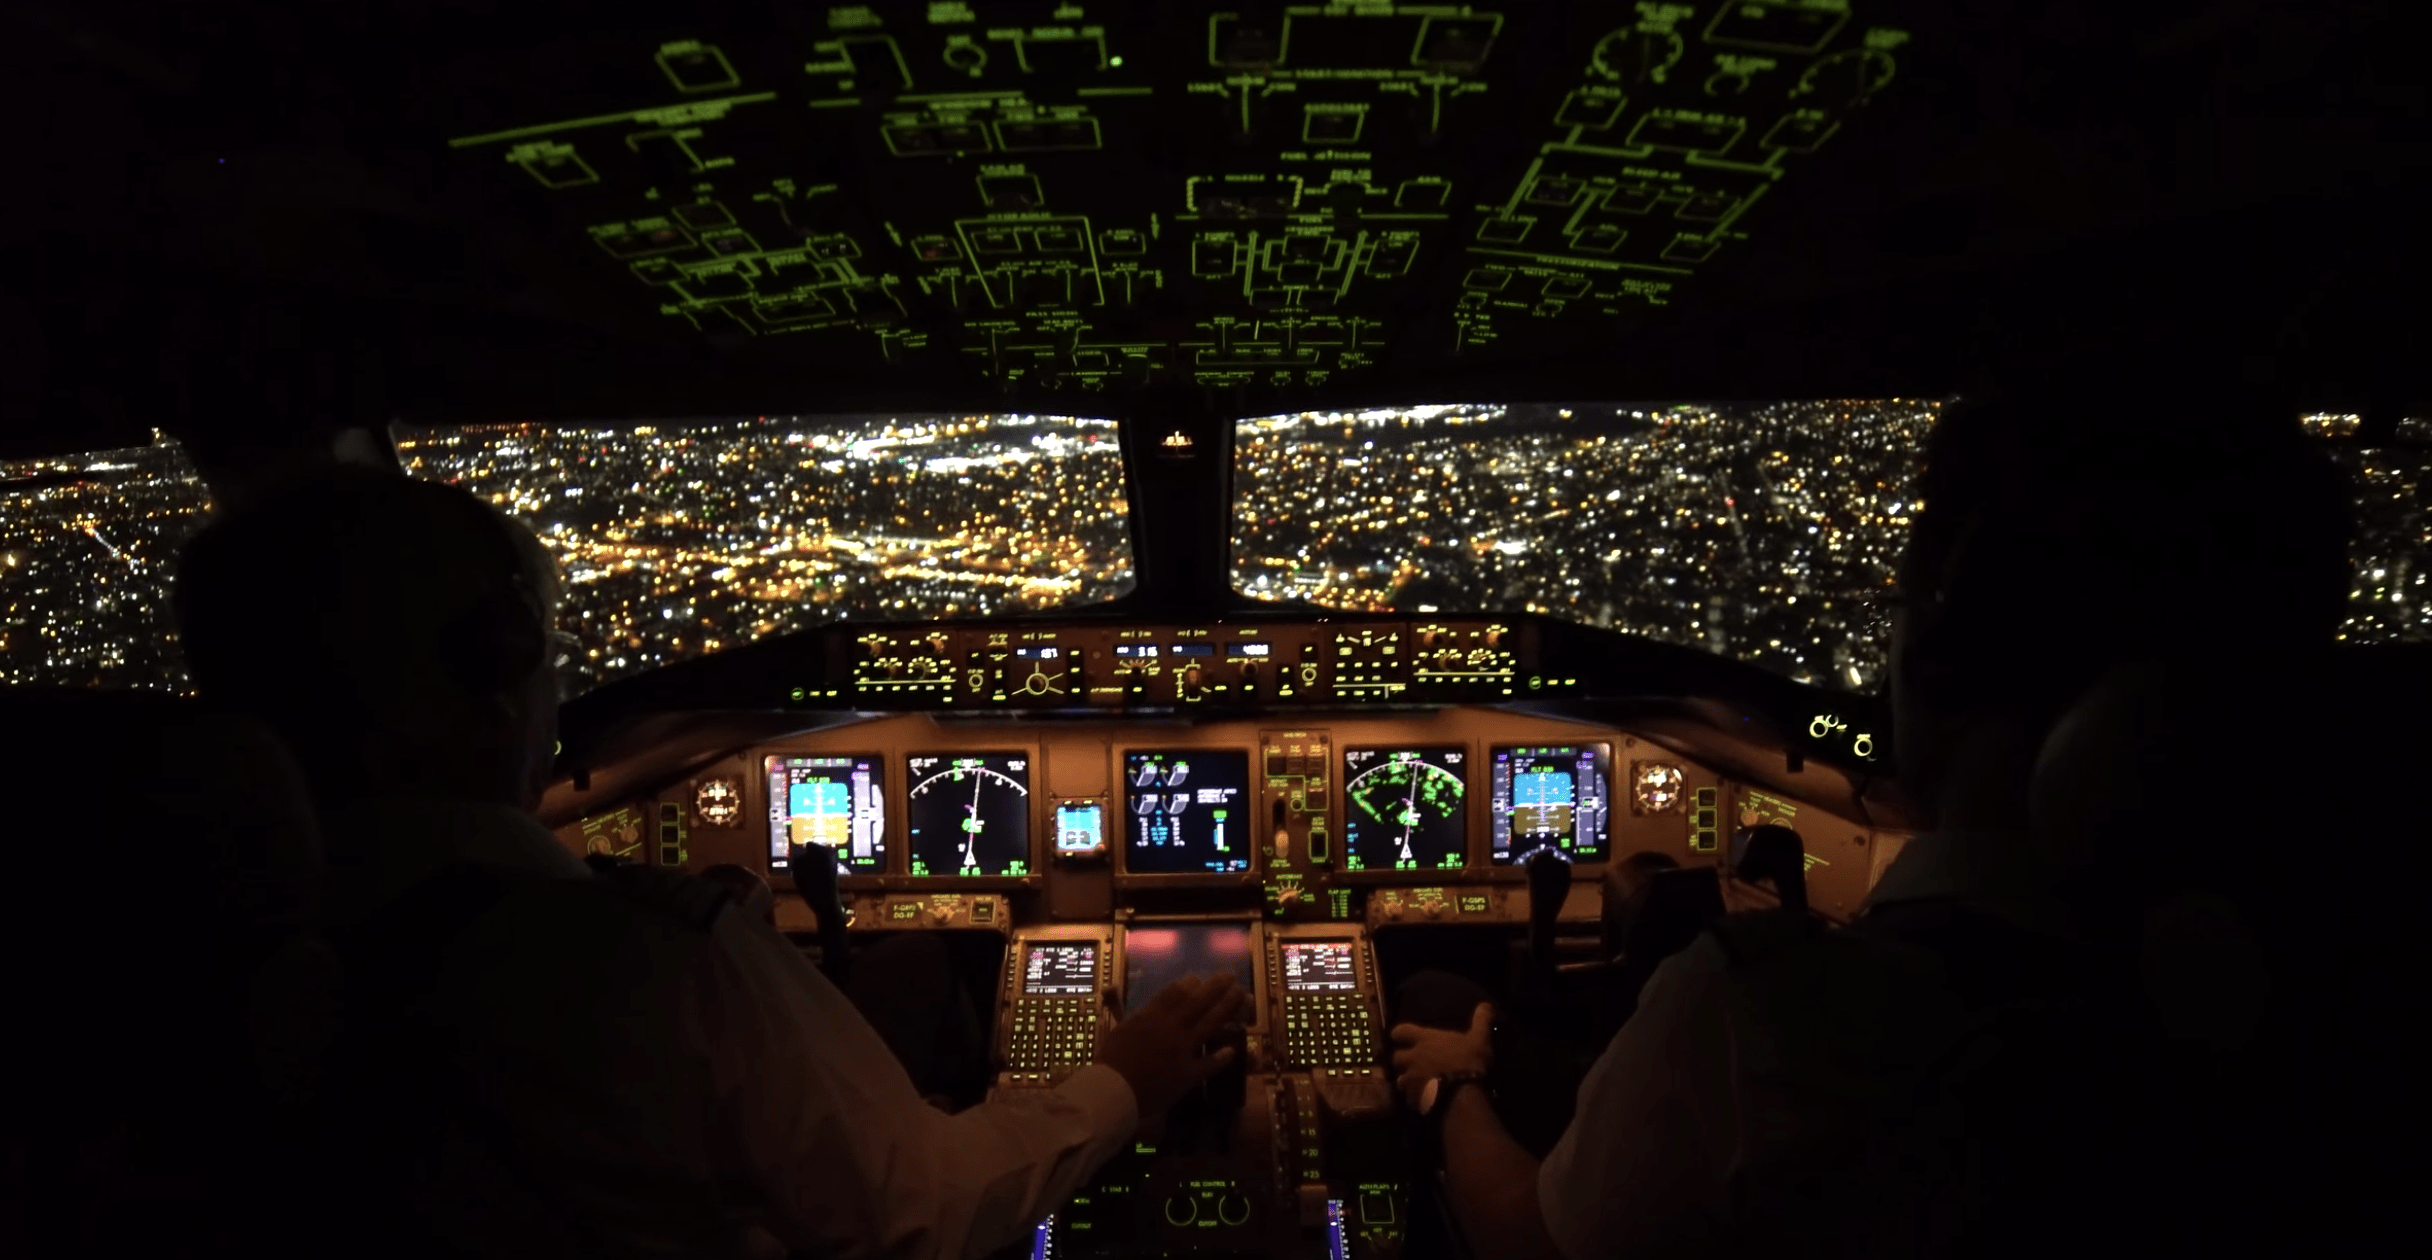 This Beautiful Video Shows What It's Like to Land a Boeing 777 in New York City